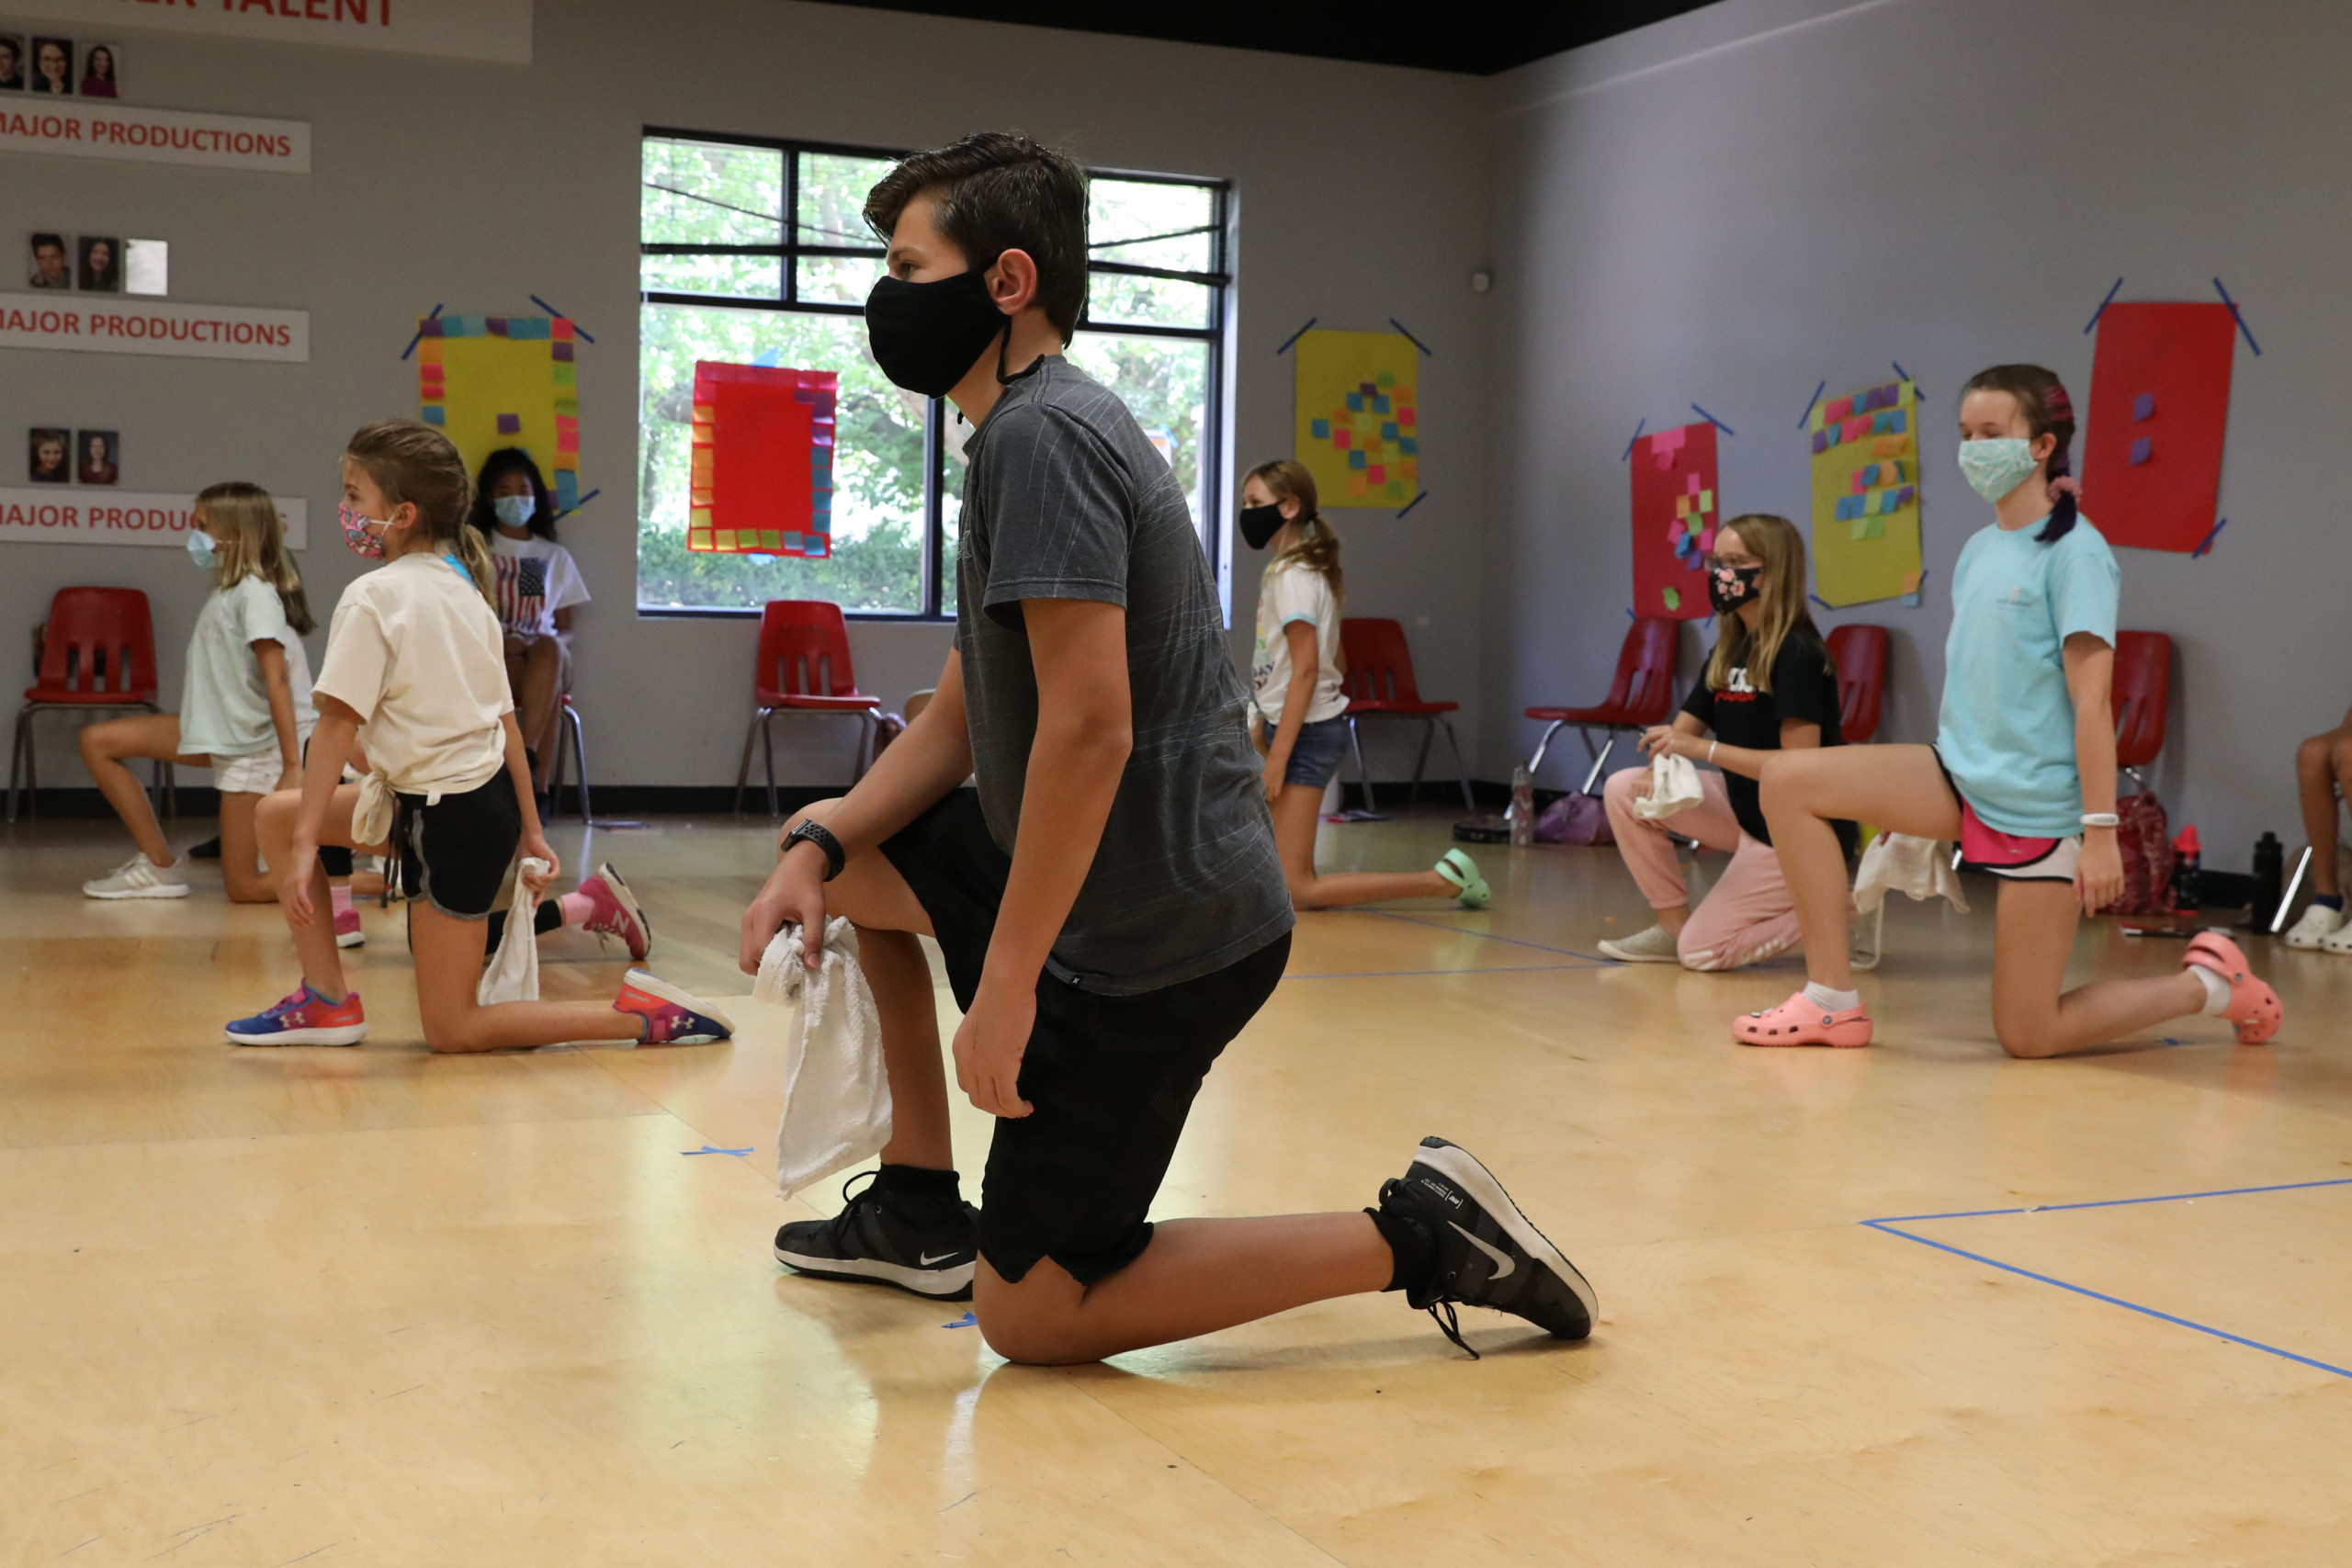 Dance Rehearsal with Masks